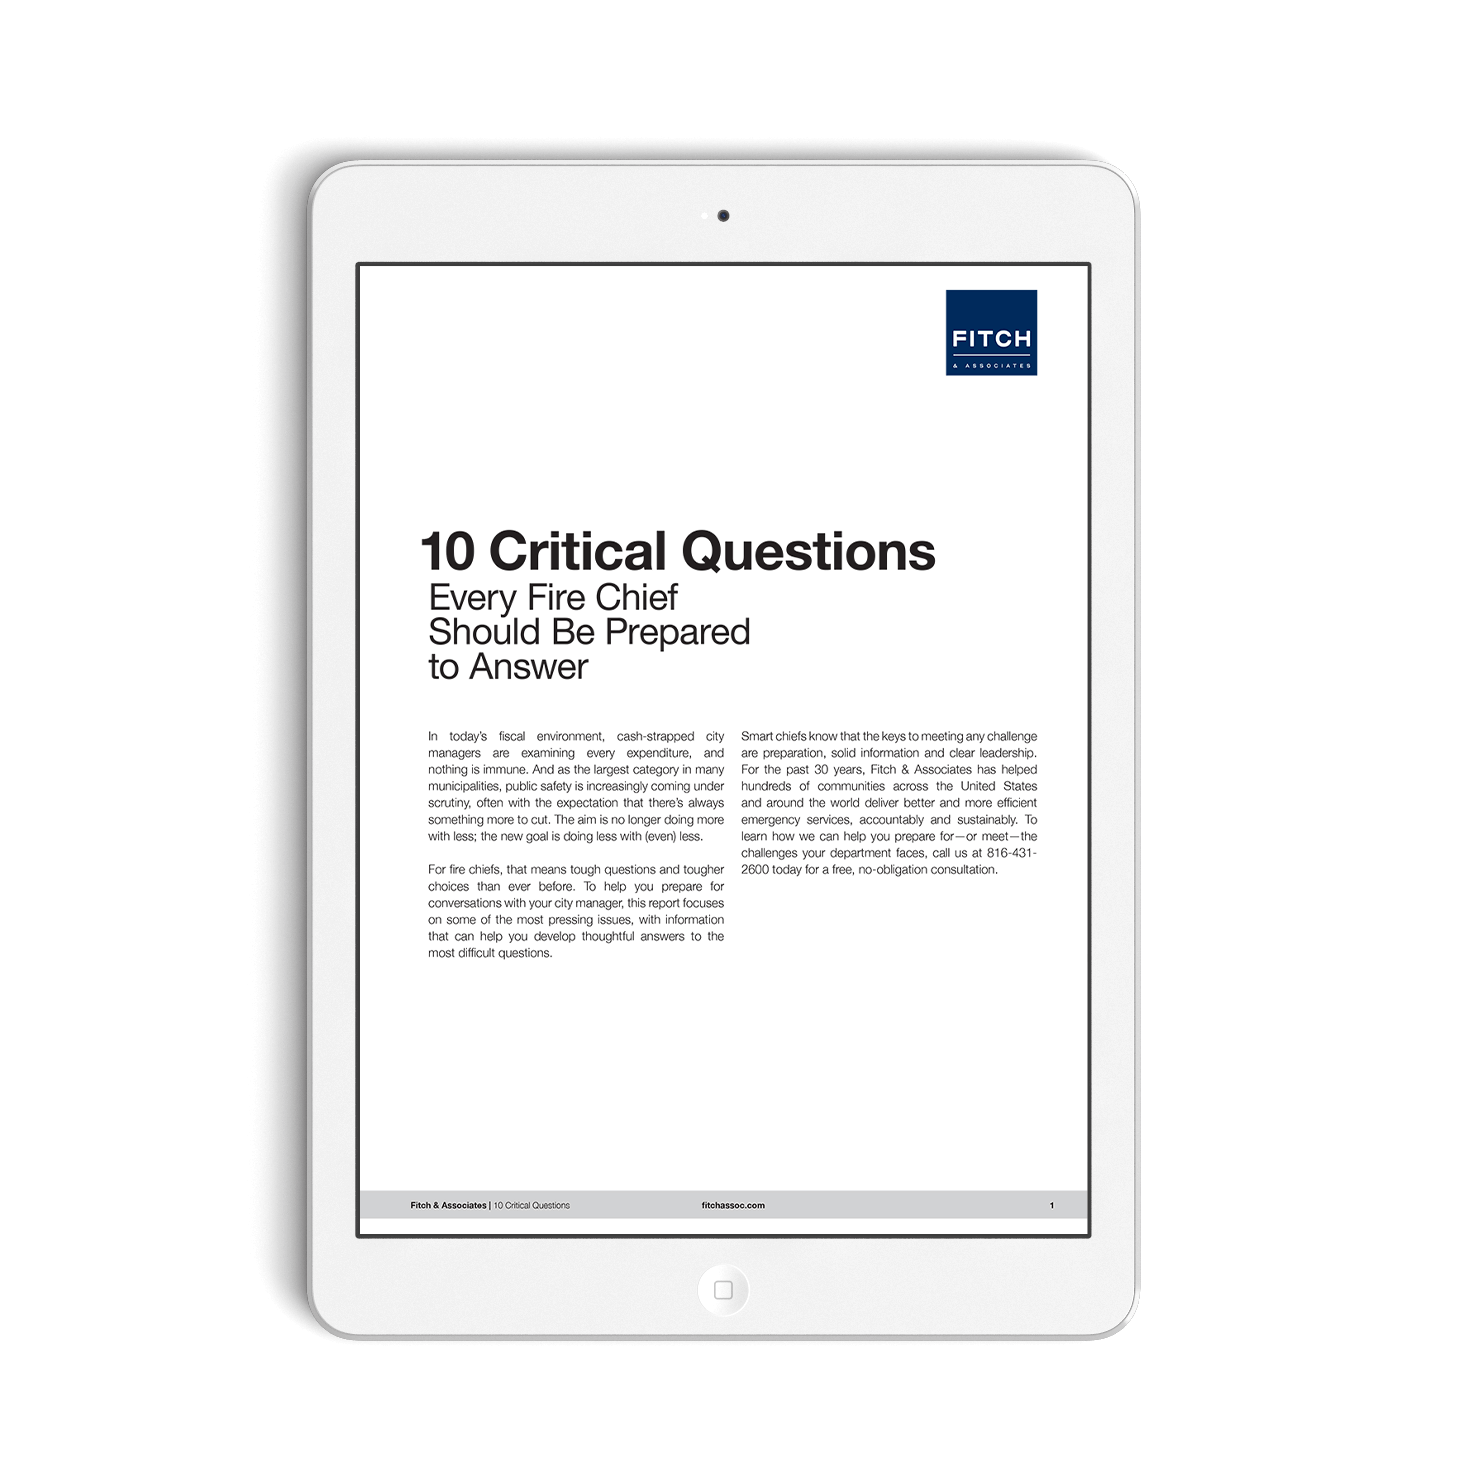 Fitch 10 Questions Whitepaper